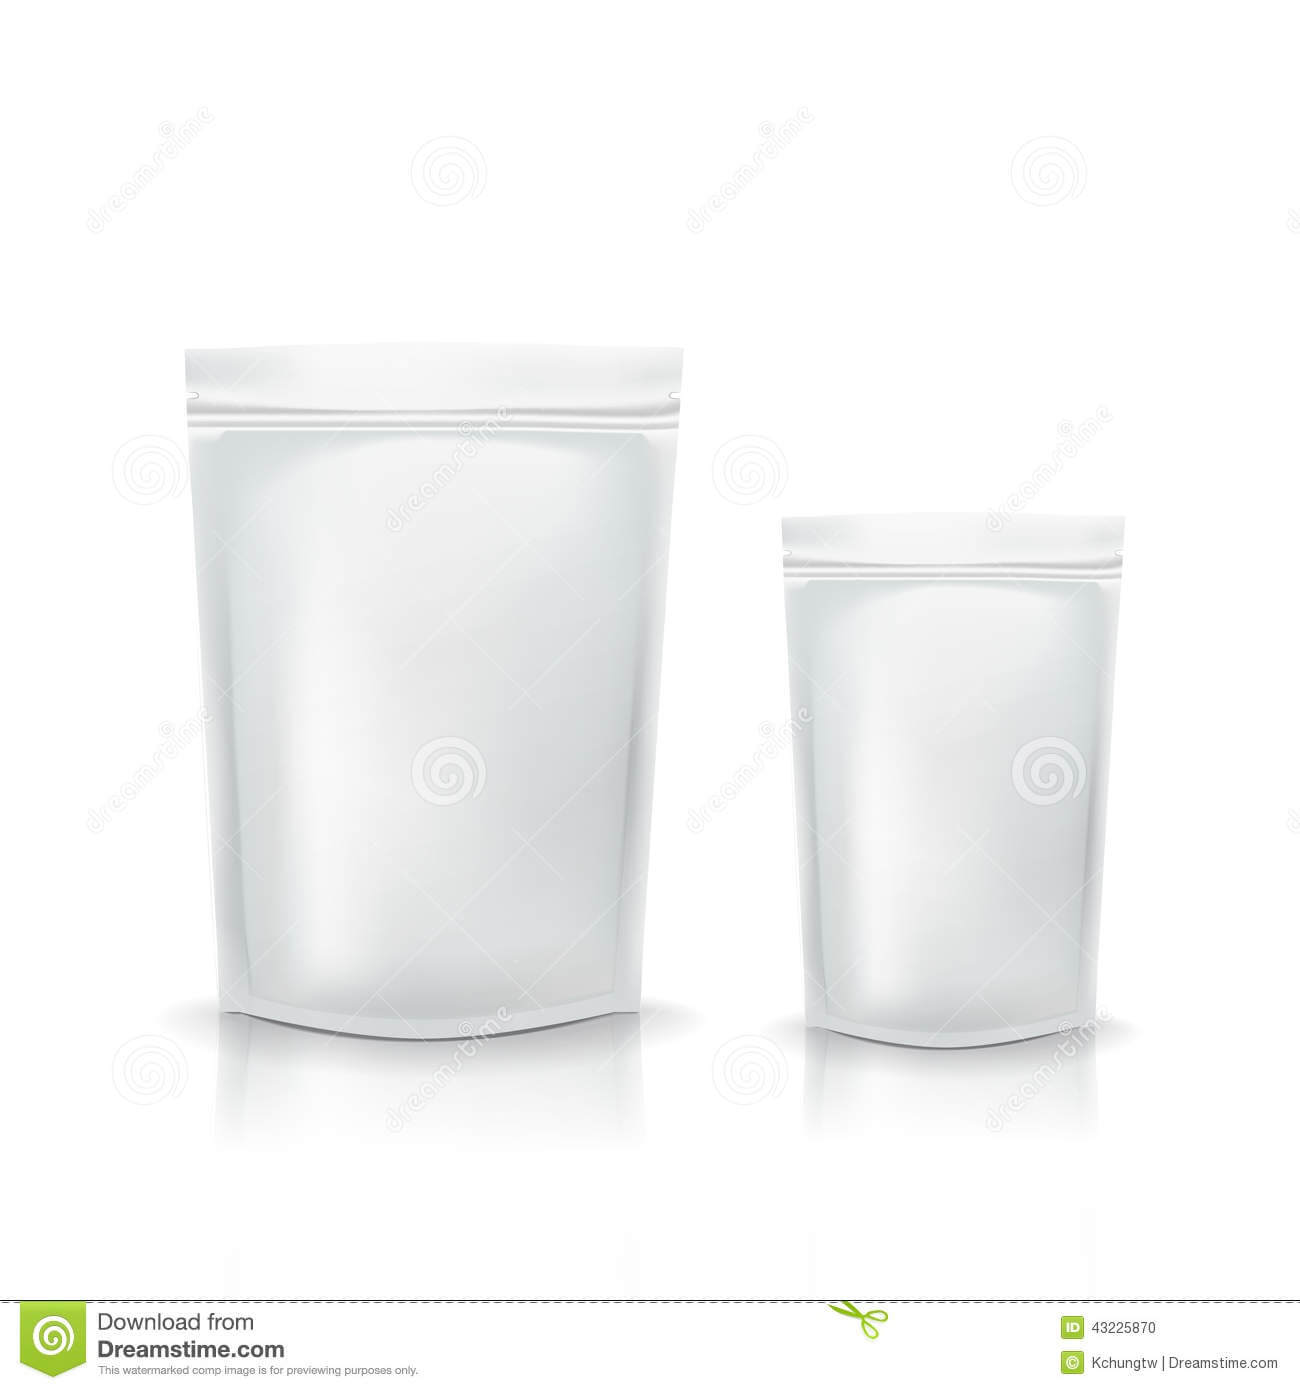 Blank Packaging Template Stock Vector. Illustration Of Ready Throughout Blank Packaging Templates